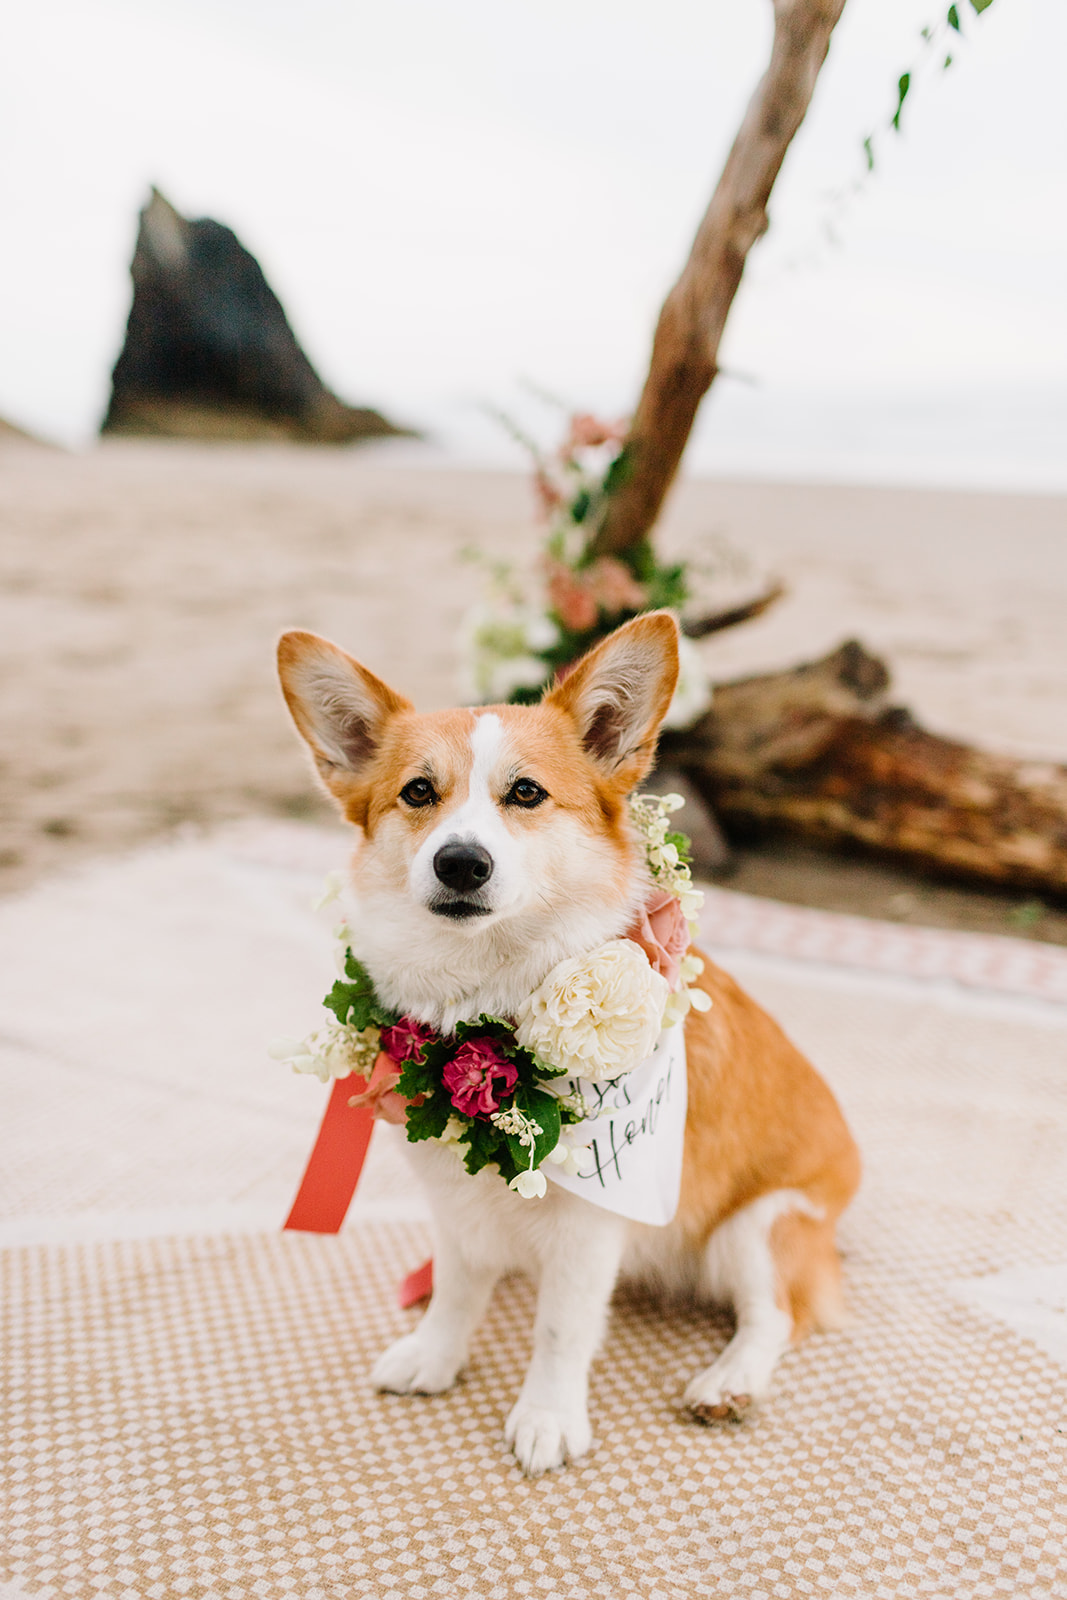 cute dog of honor posing for a picture